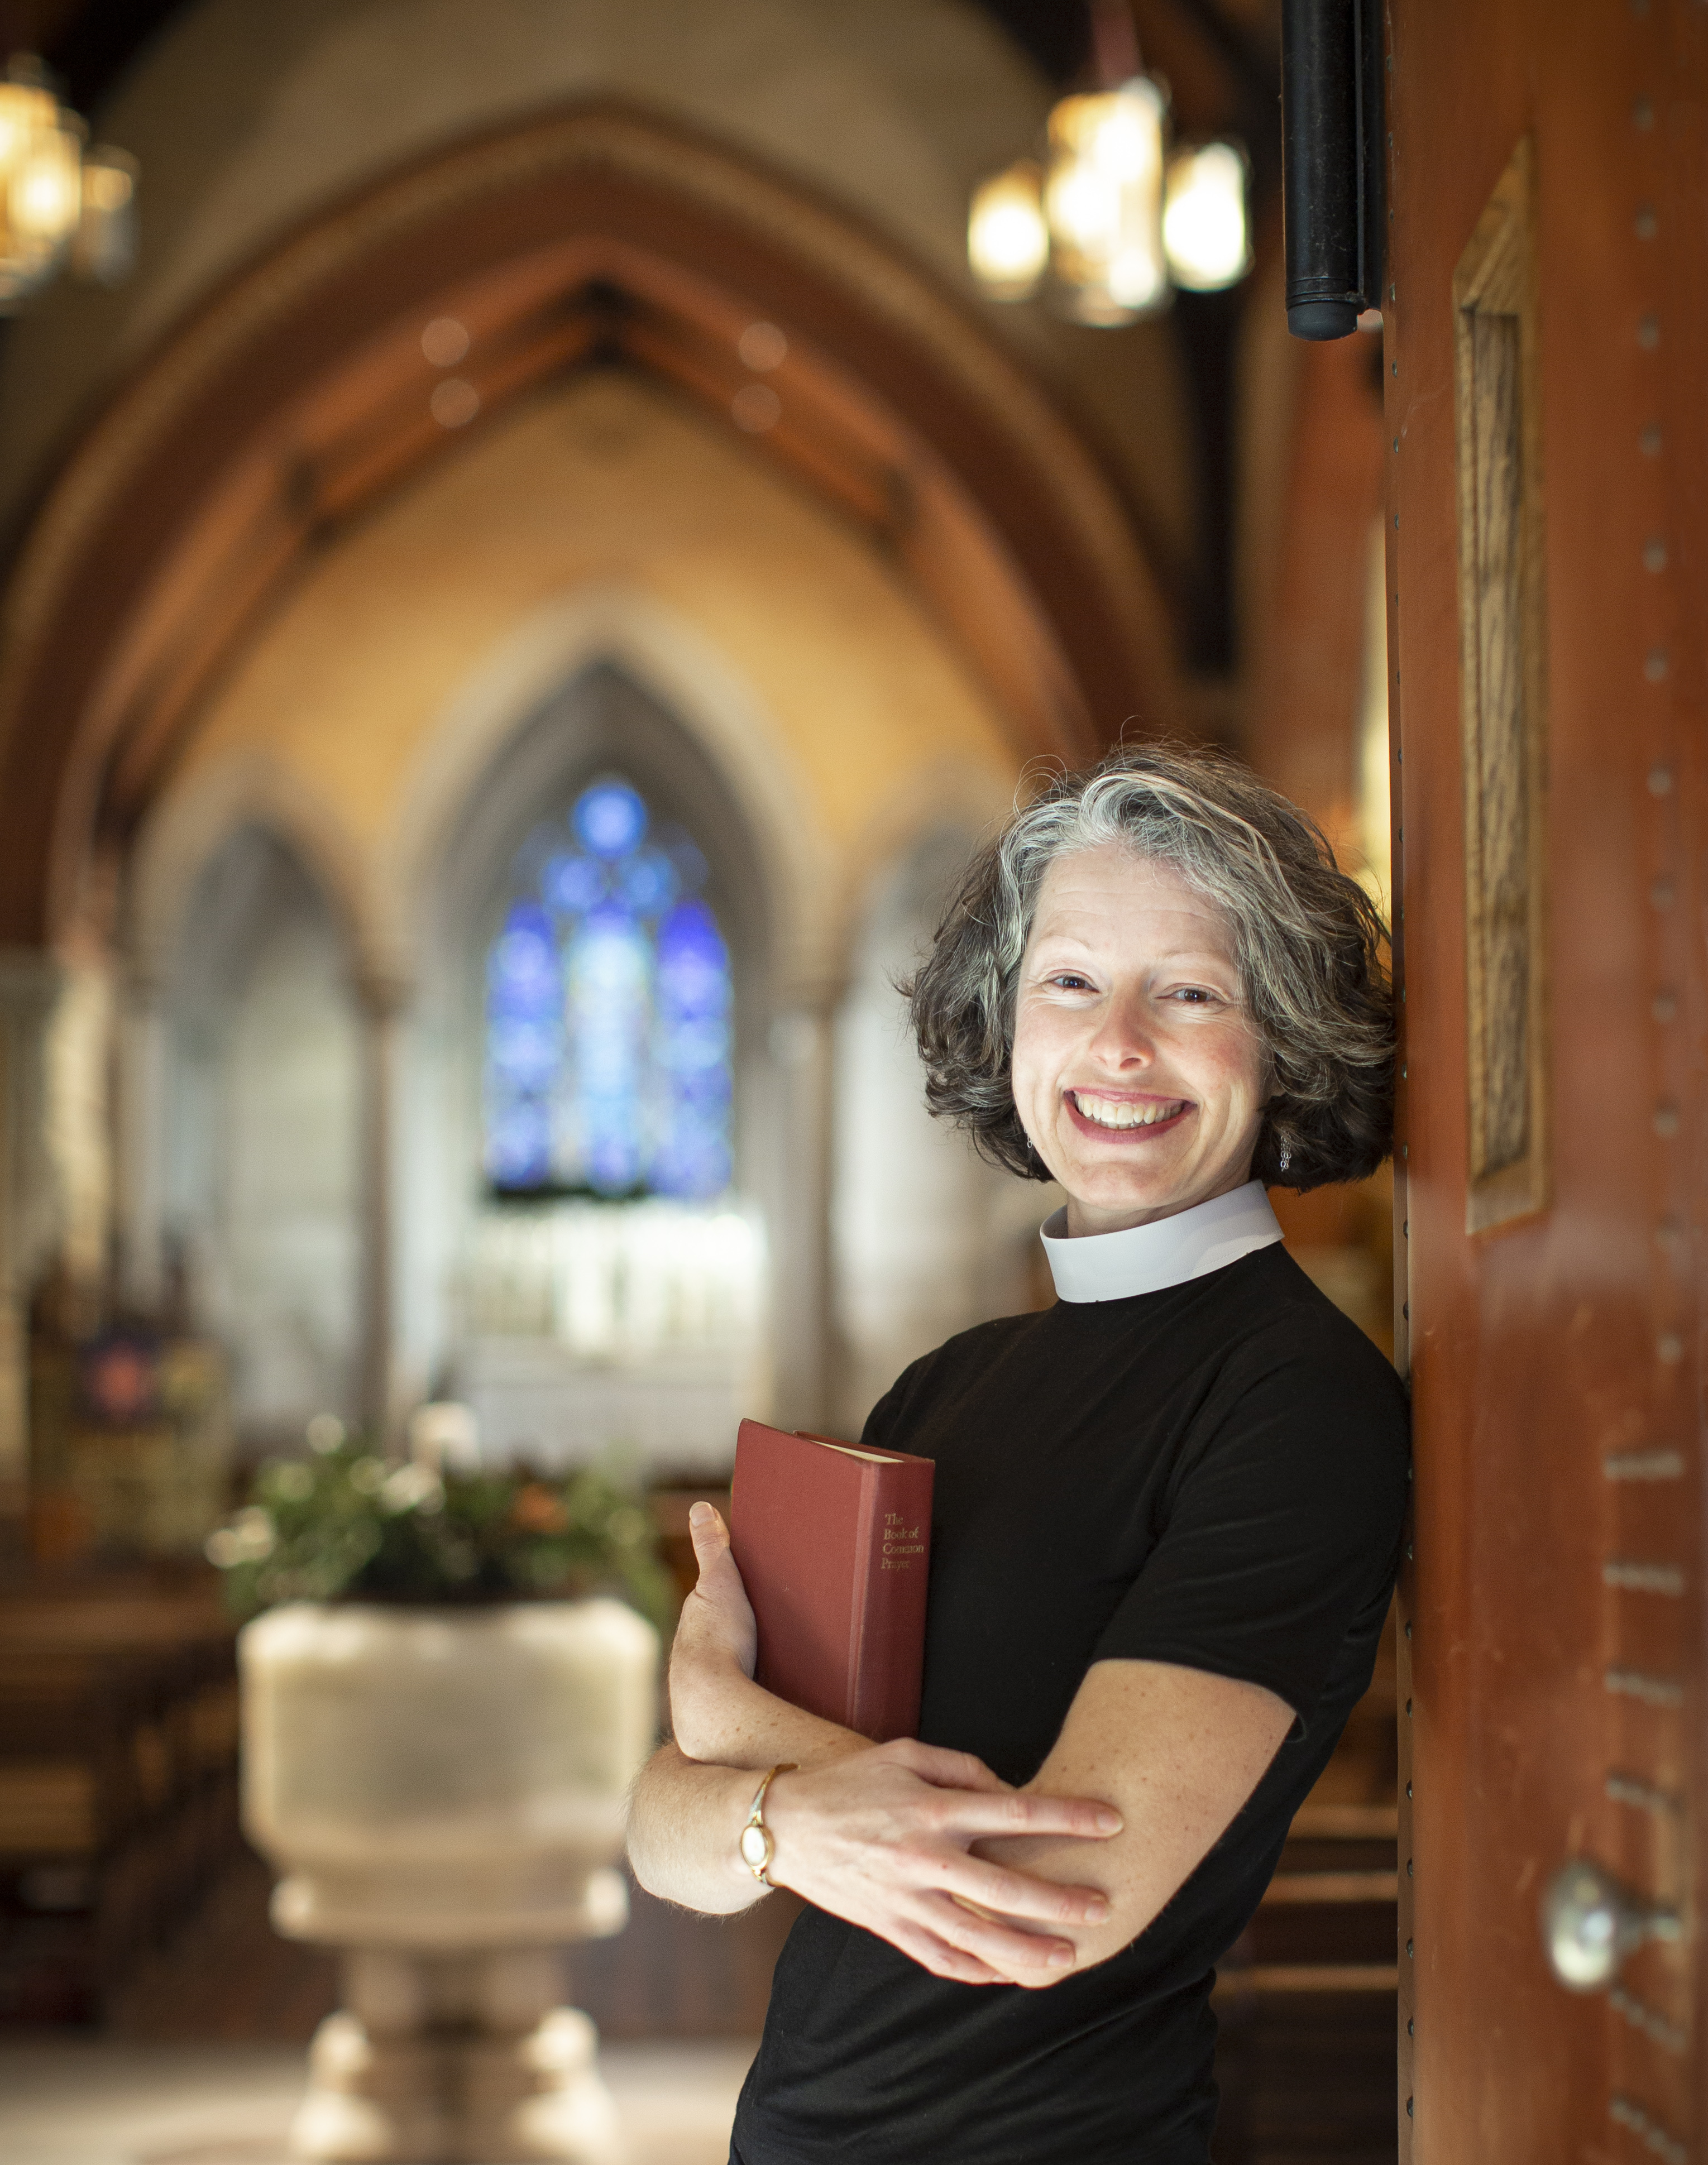 Cultivating Courage: Calling Out America's Original Sin - The Rev. Anne Thatcher